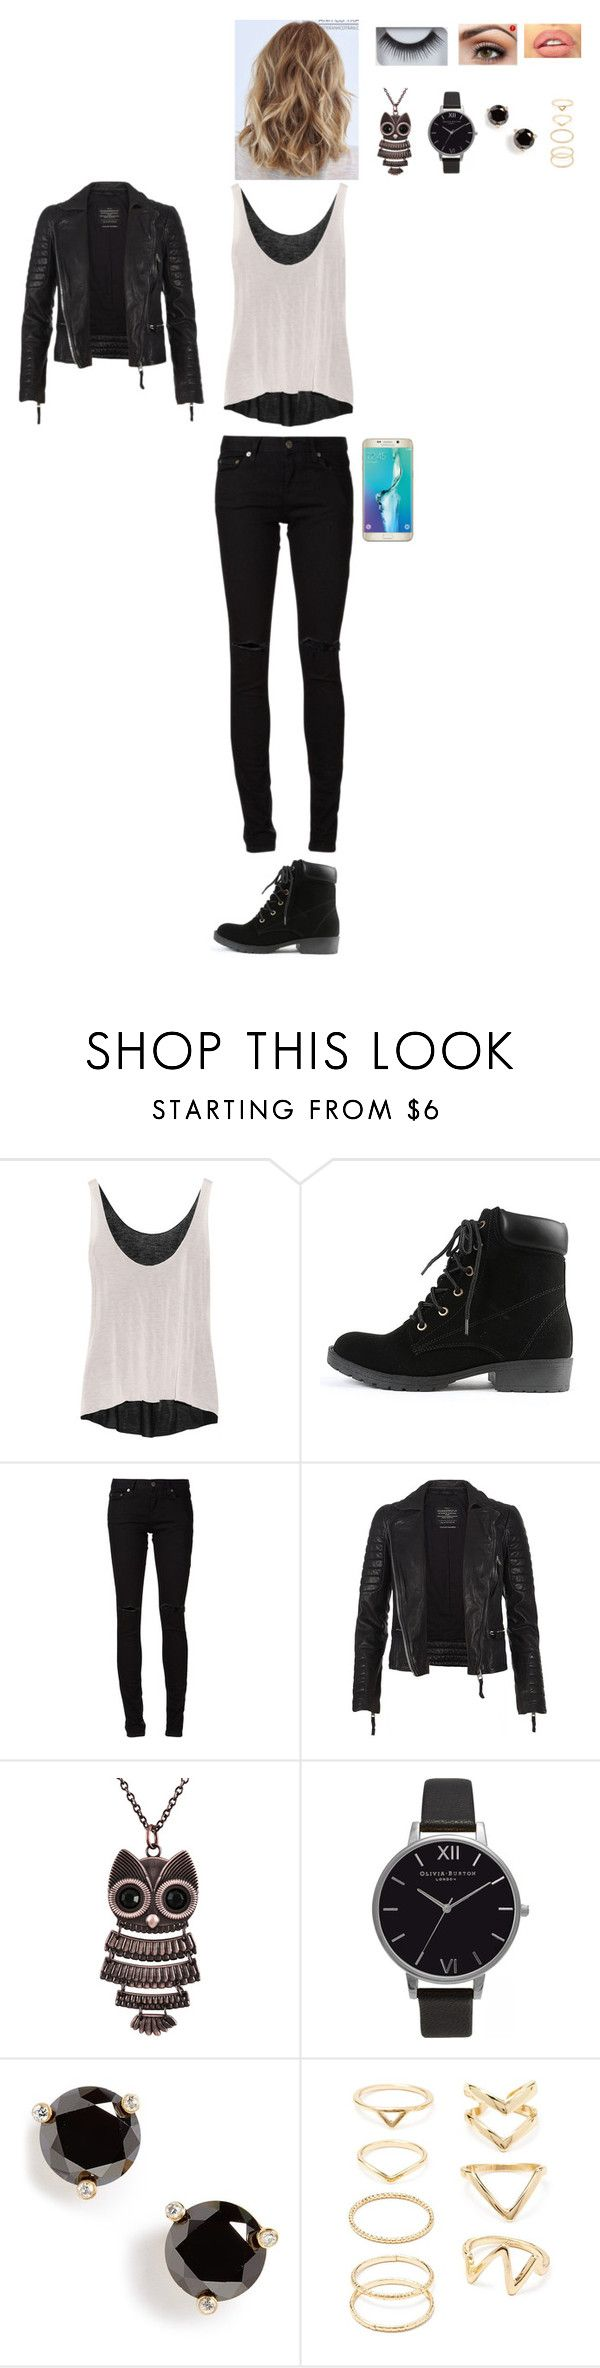 """Untitled #1137"" by leacousty55 ❤ liked on Polyvore featuring Enza Costa, Yves Saint Laurent, AllSaints, Samsung, Decree, Olivia Burton, Kate Spade, Forever 21 and Georgie Beauty"